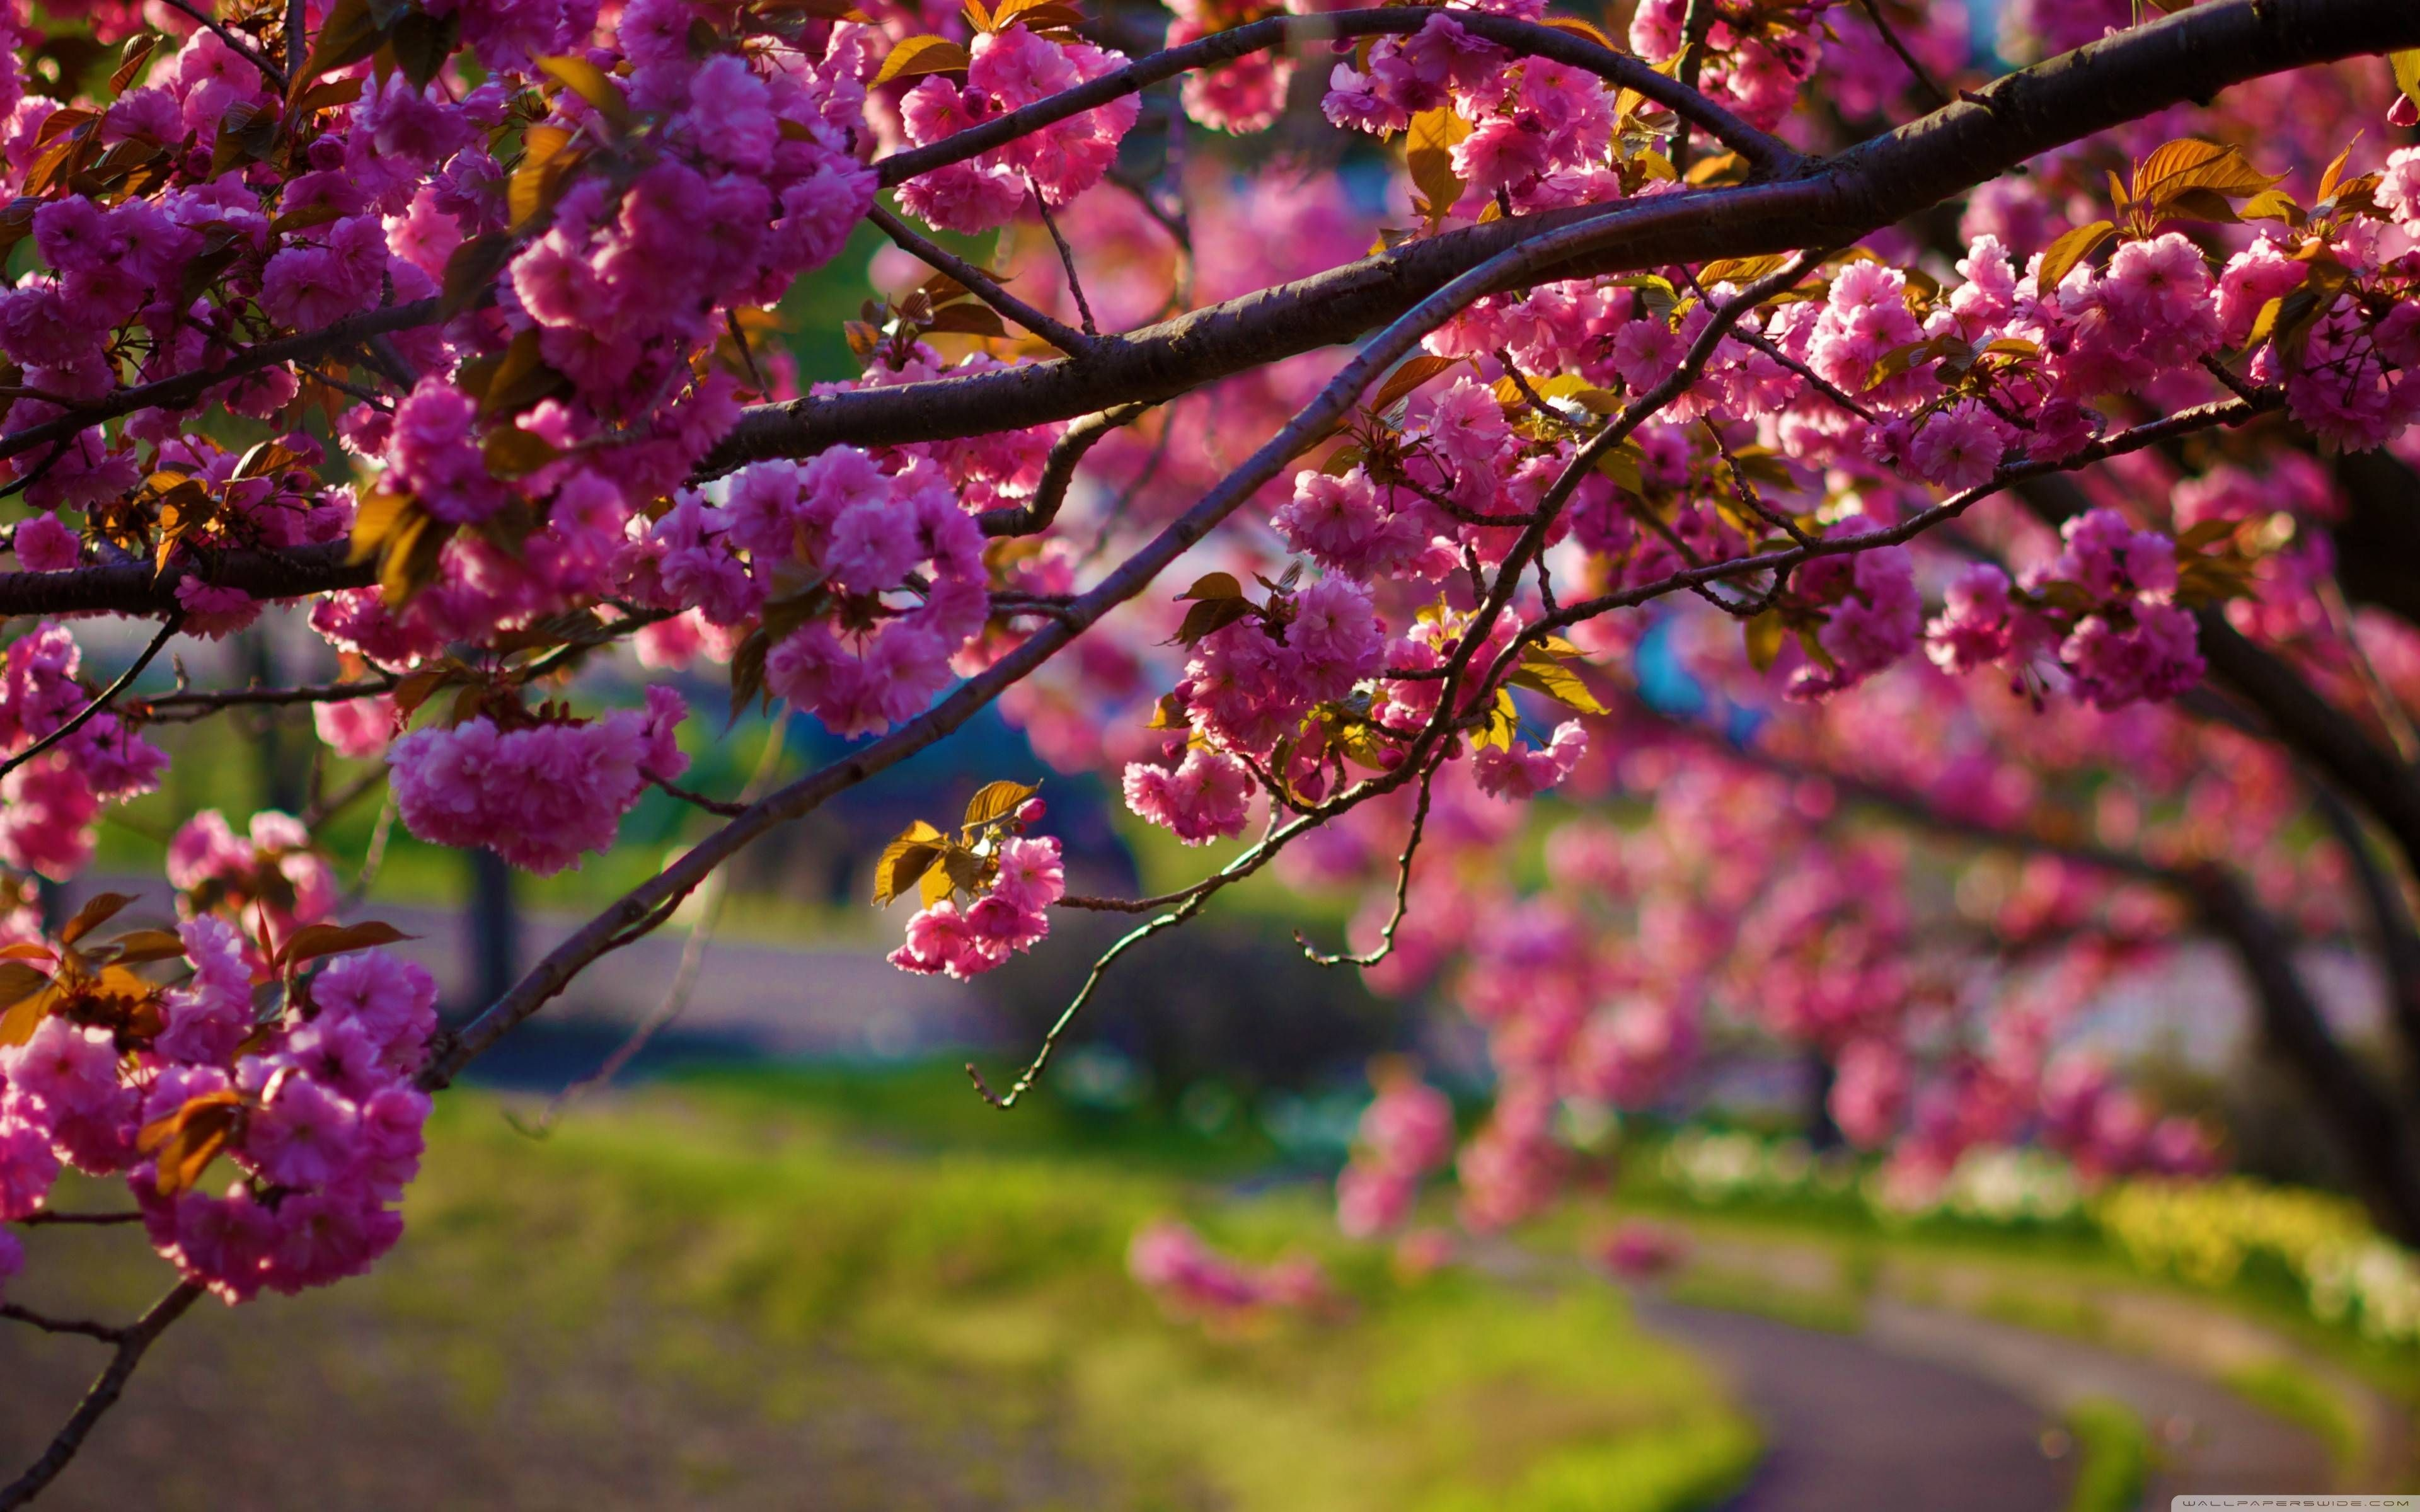 Spring Wallpapers For Iphone | Natures Wallpapers in 2019 | Spring wallpaper, Autumn leaves ...